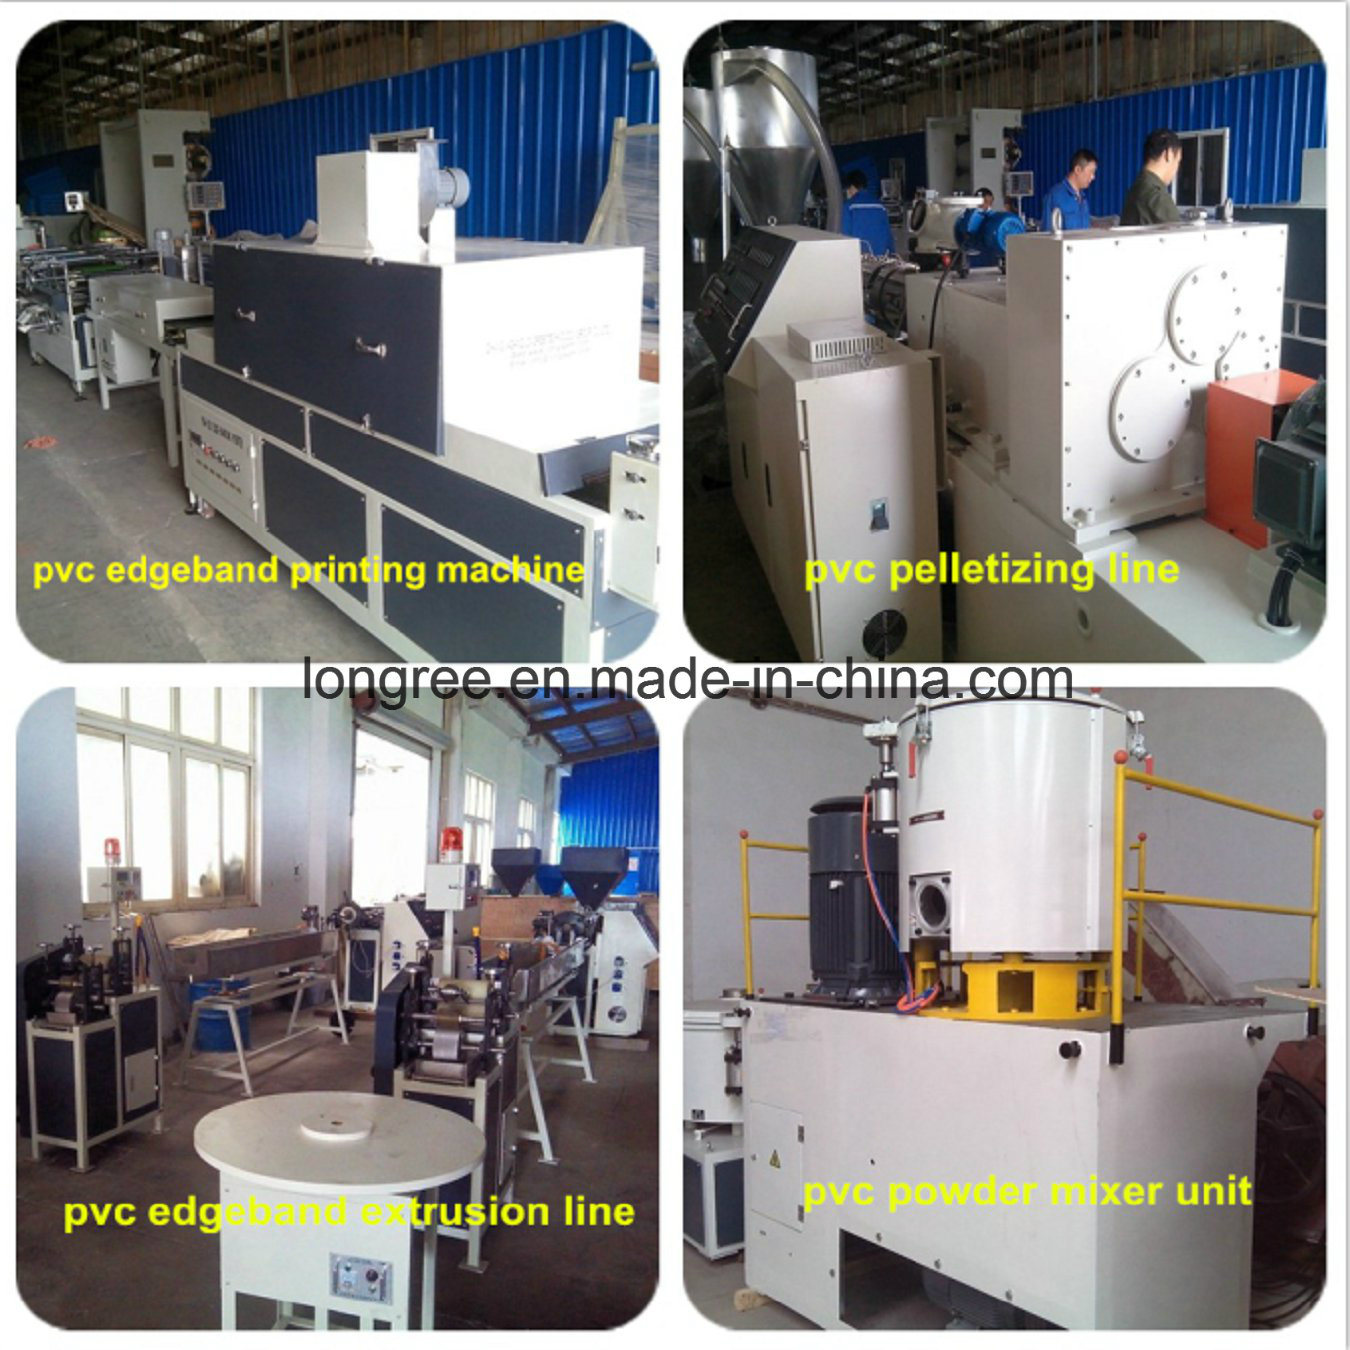 400-600mm High Efficient PVC Sheet Extruder/PVC Edge Banding Sheet Machine with Slitter and Printing Line